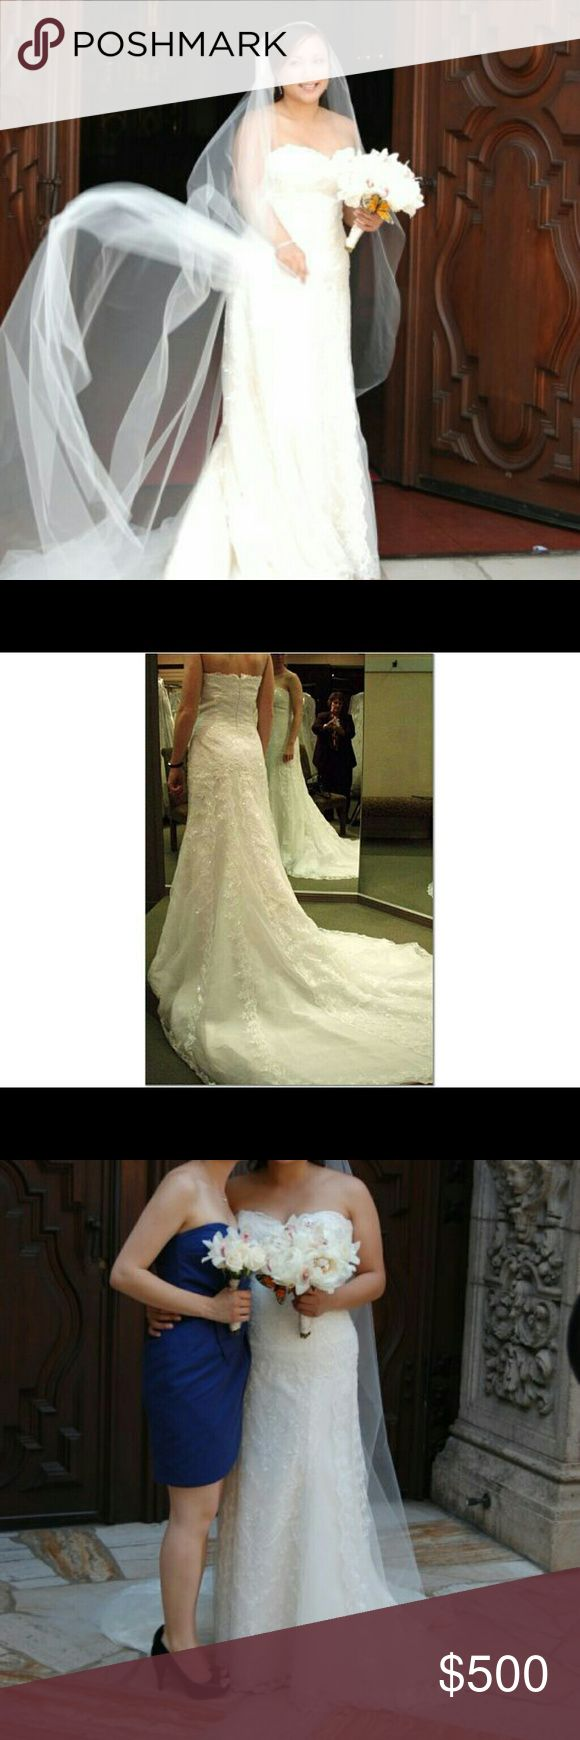 "Pronovias ideal wedding dress Sweet heart neck, floor length with cathedral train. Worn once.  Dry cleaned. Kept in original bag. Price negotiable.   Dress size 16 but I'm street size 10. I'm 5'3"" and wore 5"" heels. pronovias Dresses"